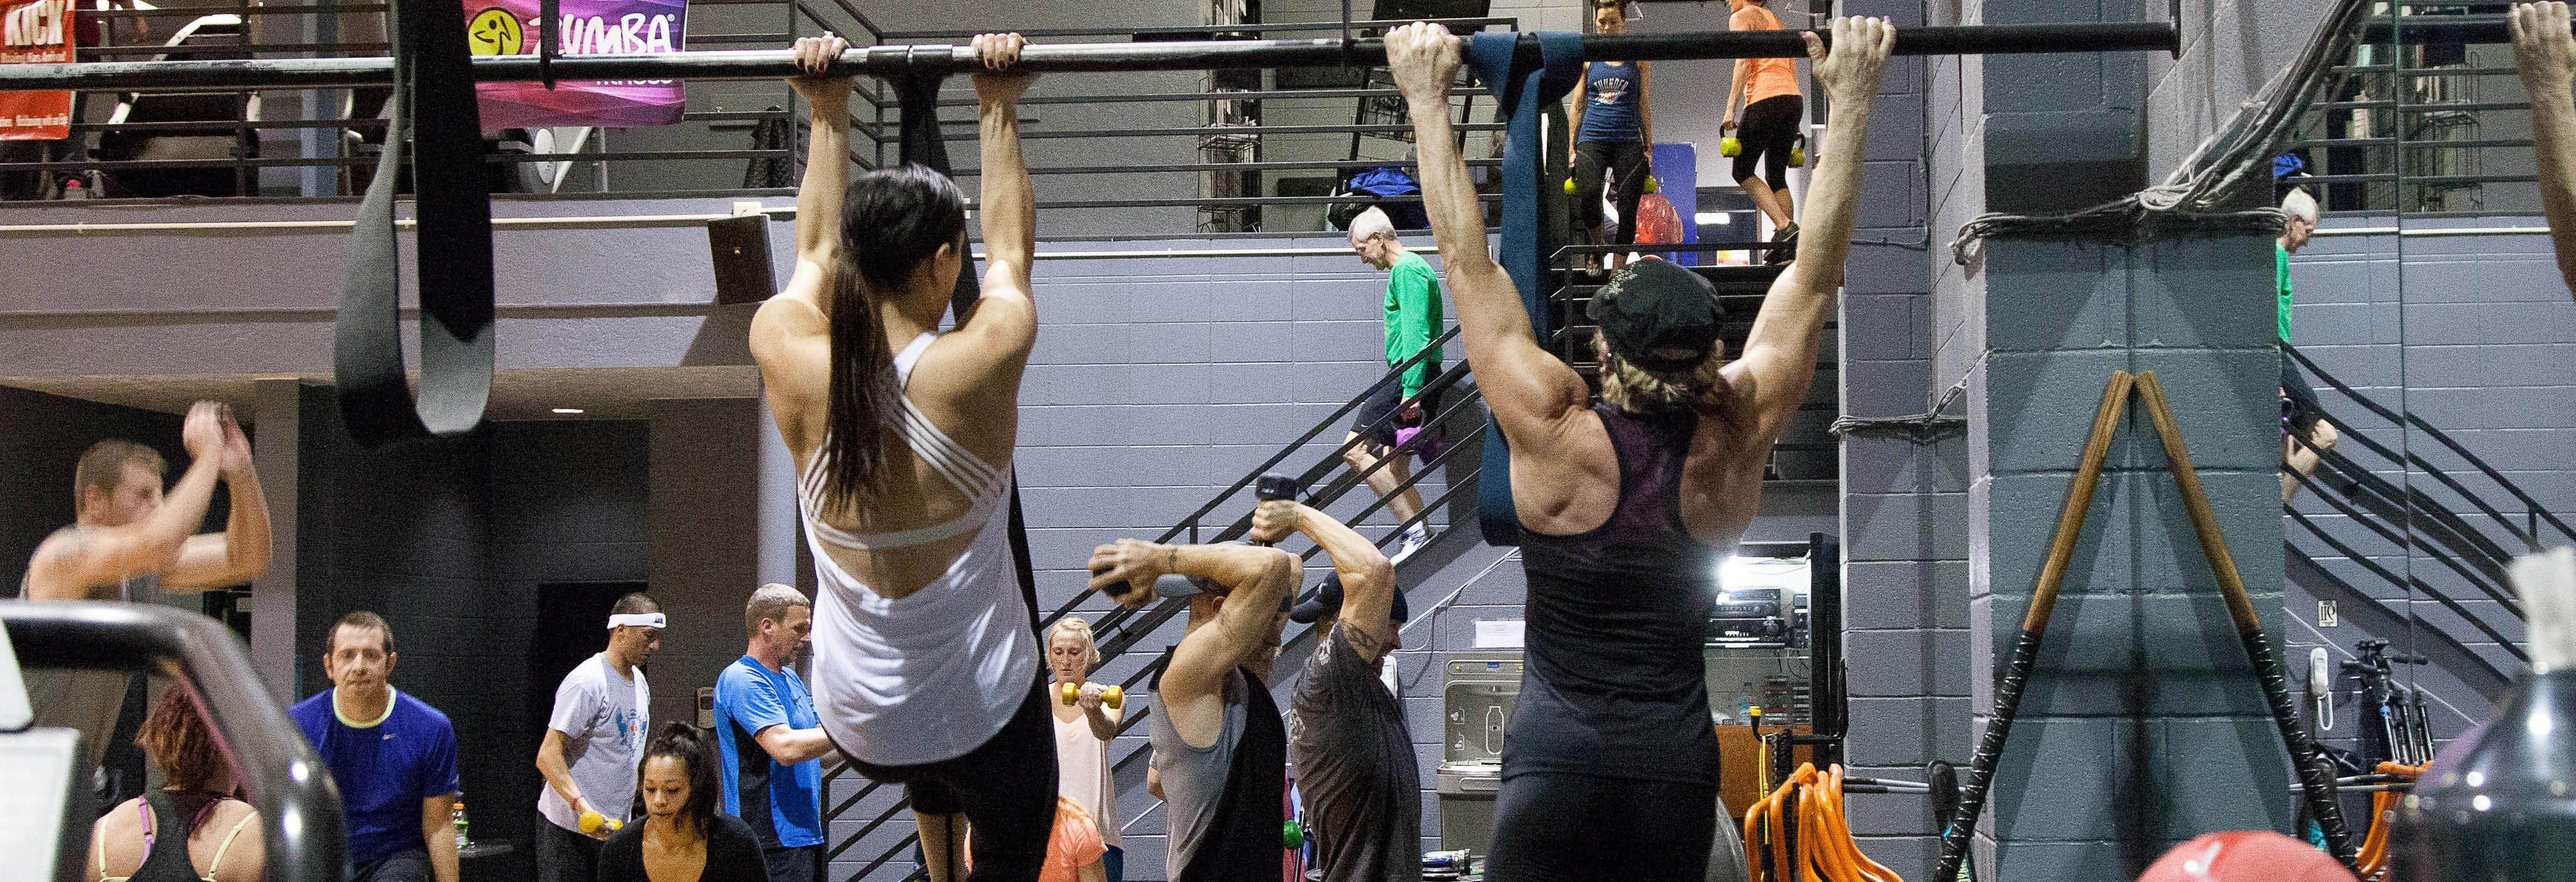 Work Out West Fitness and Tennis Club Greeley Colorado